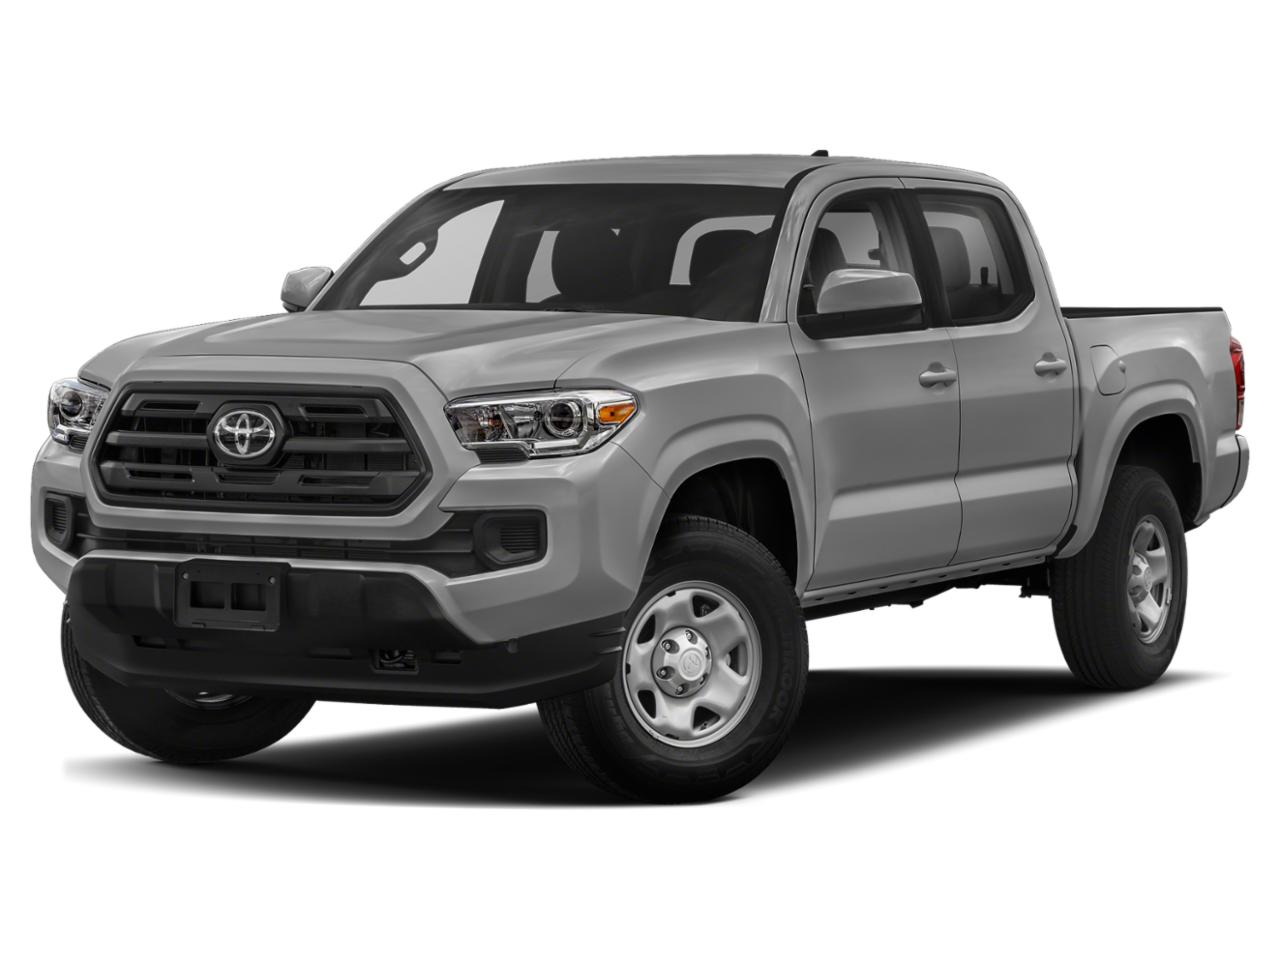 2019 Toyota Tacoma 4WD Vehicle Photo in Lincoln, NE 68521